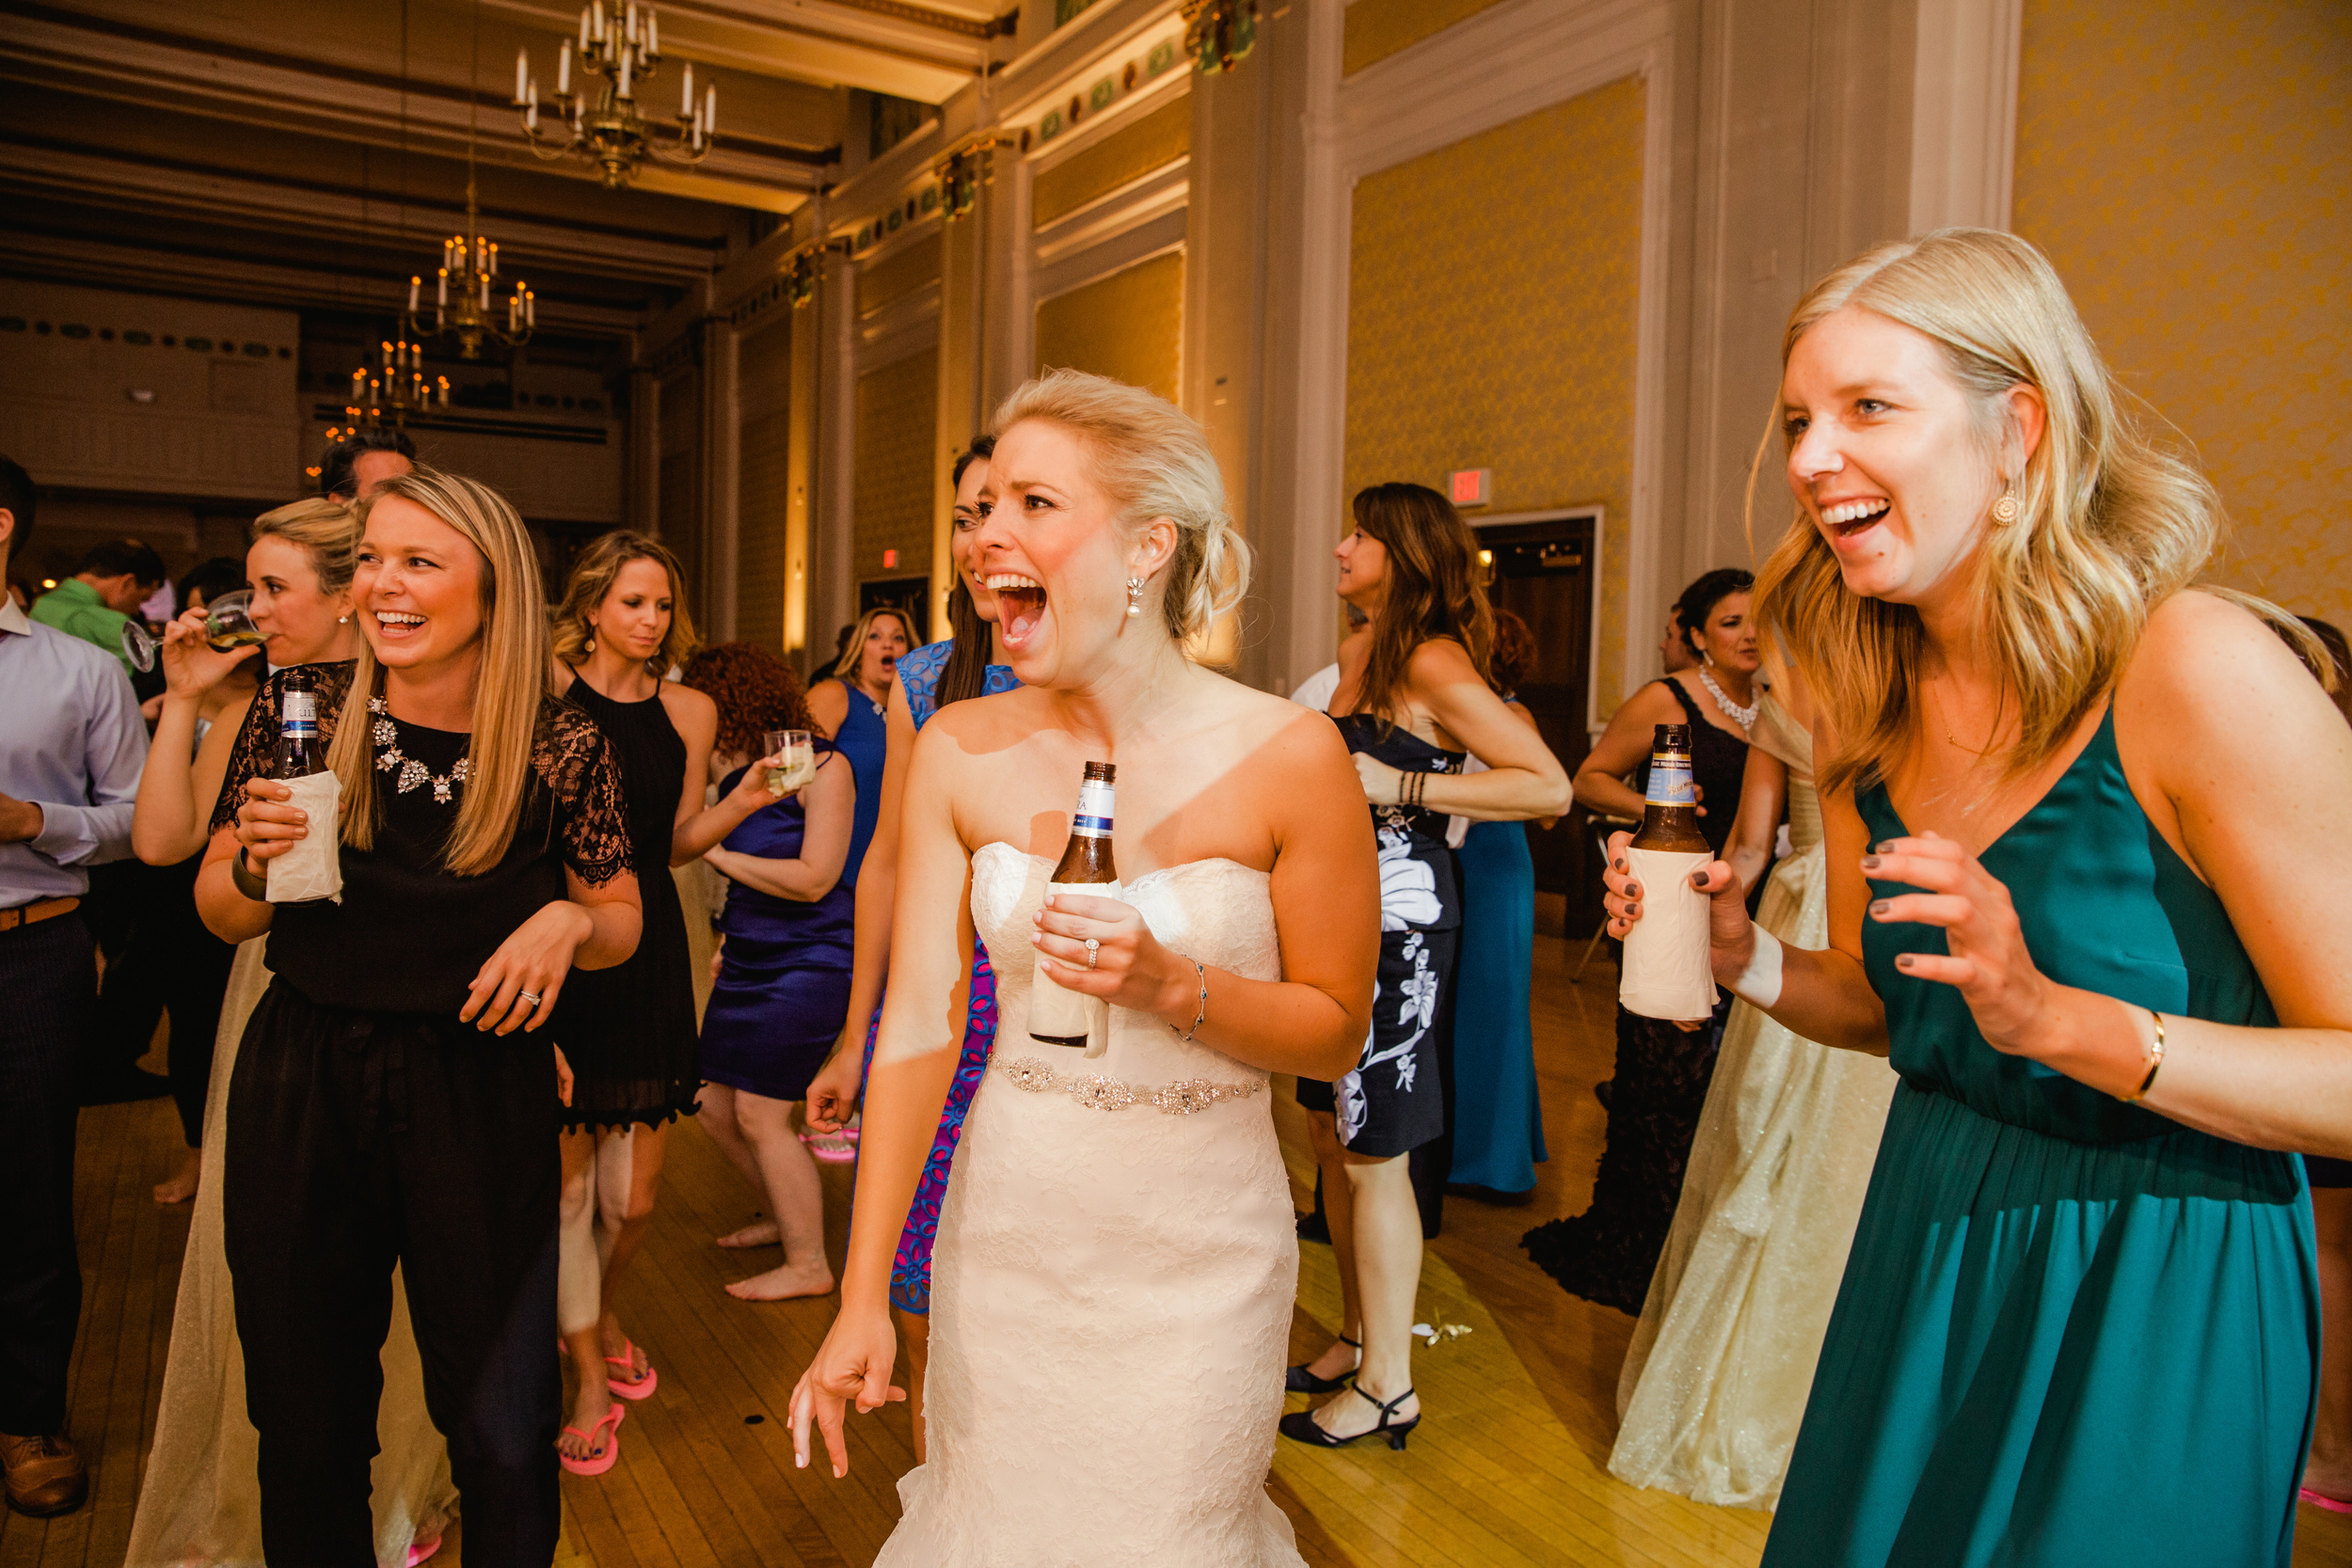 ChelseaMike_Wedding_AmyCampbellPhotography_0910.jpg